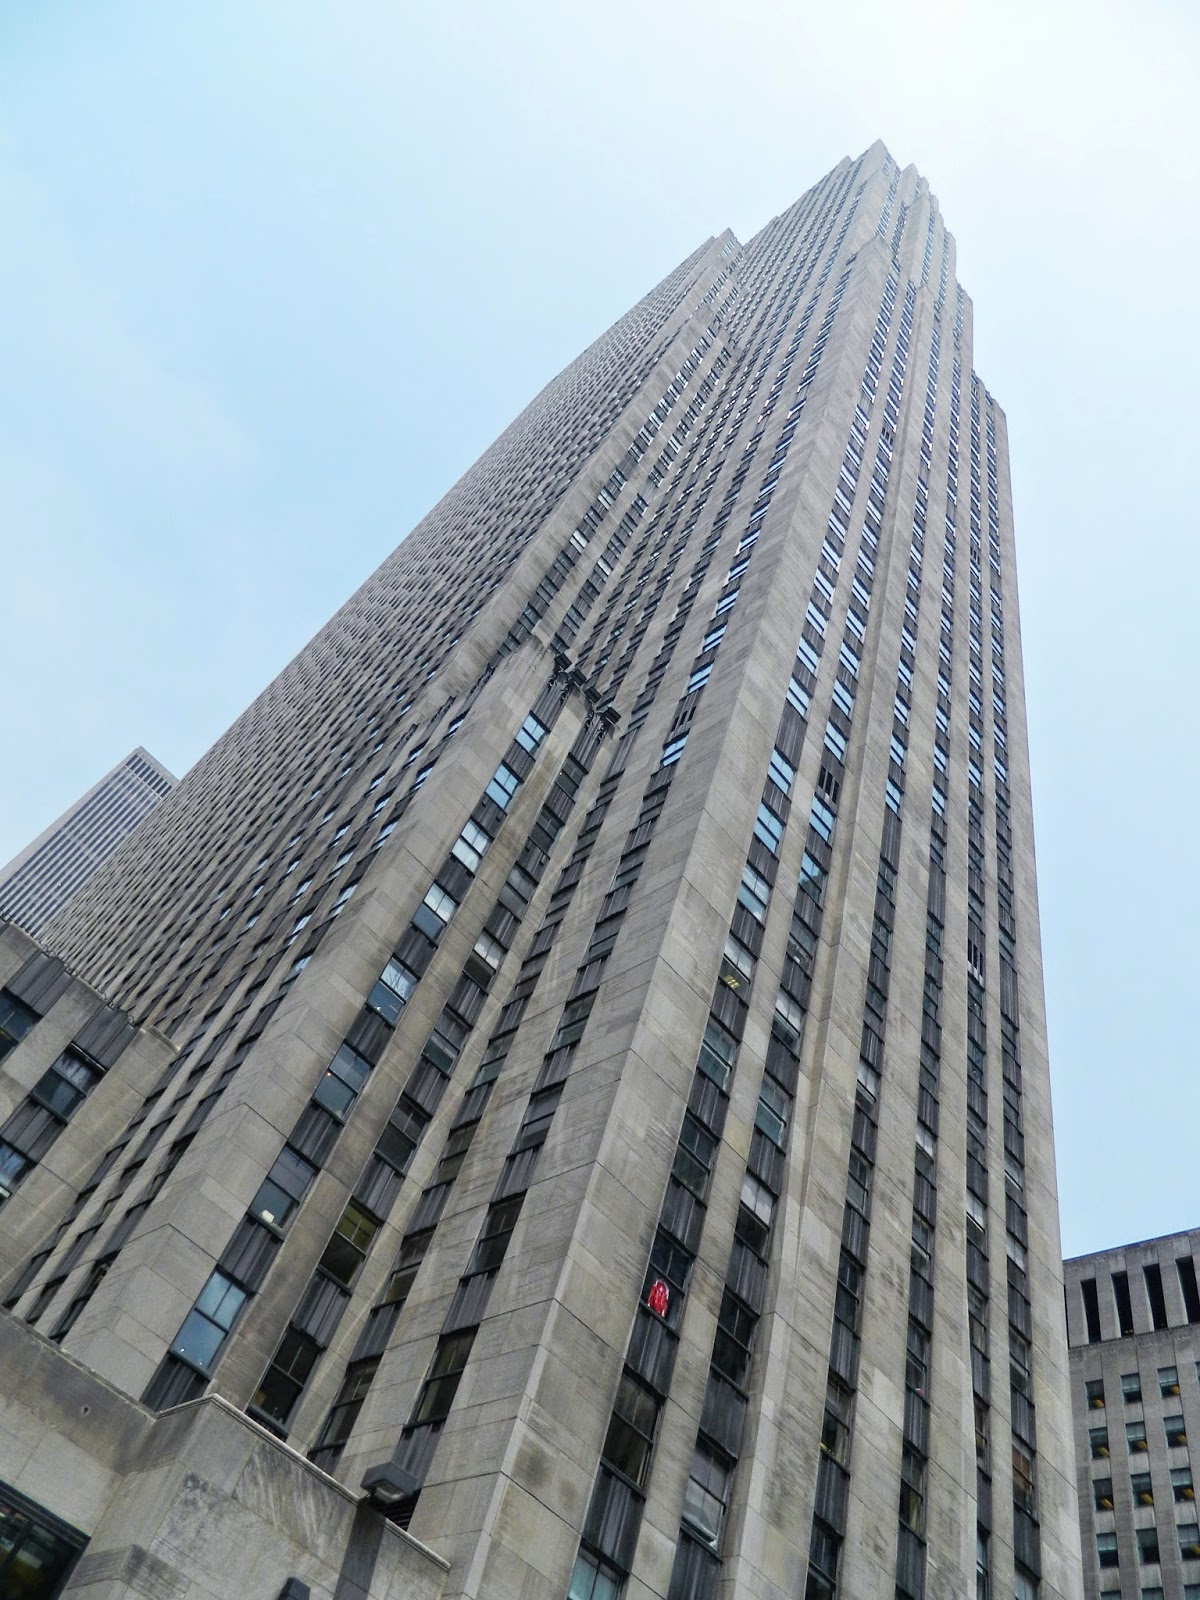 new york city Rockefeller Center architecture high tall sky sunny